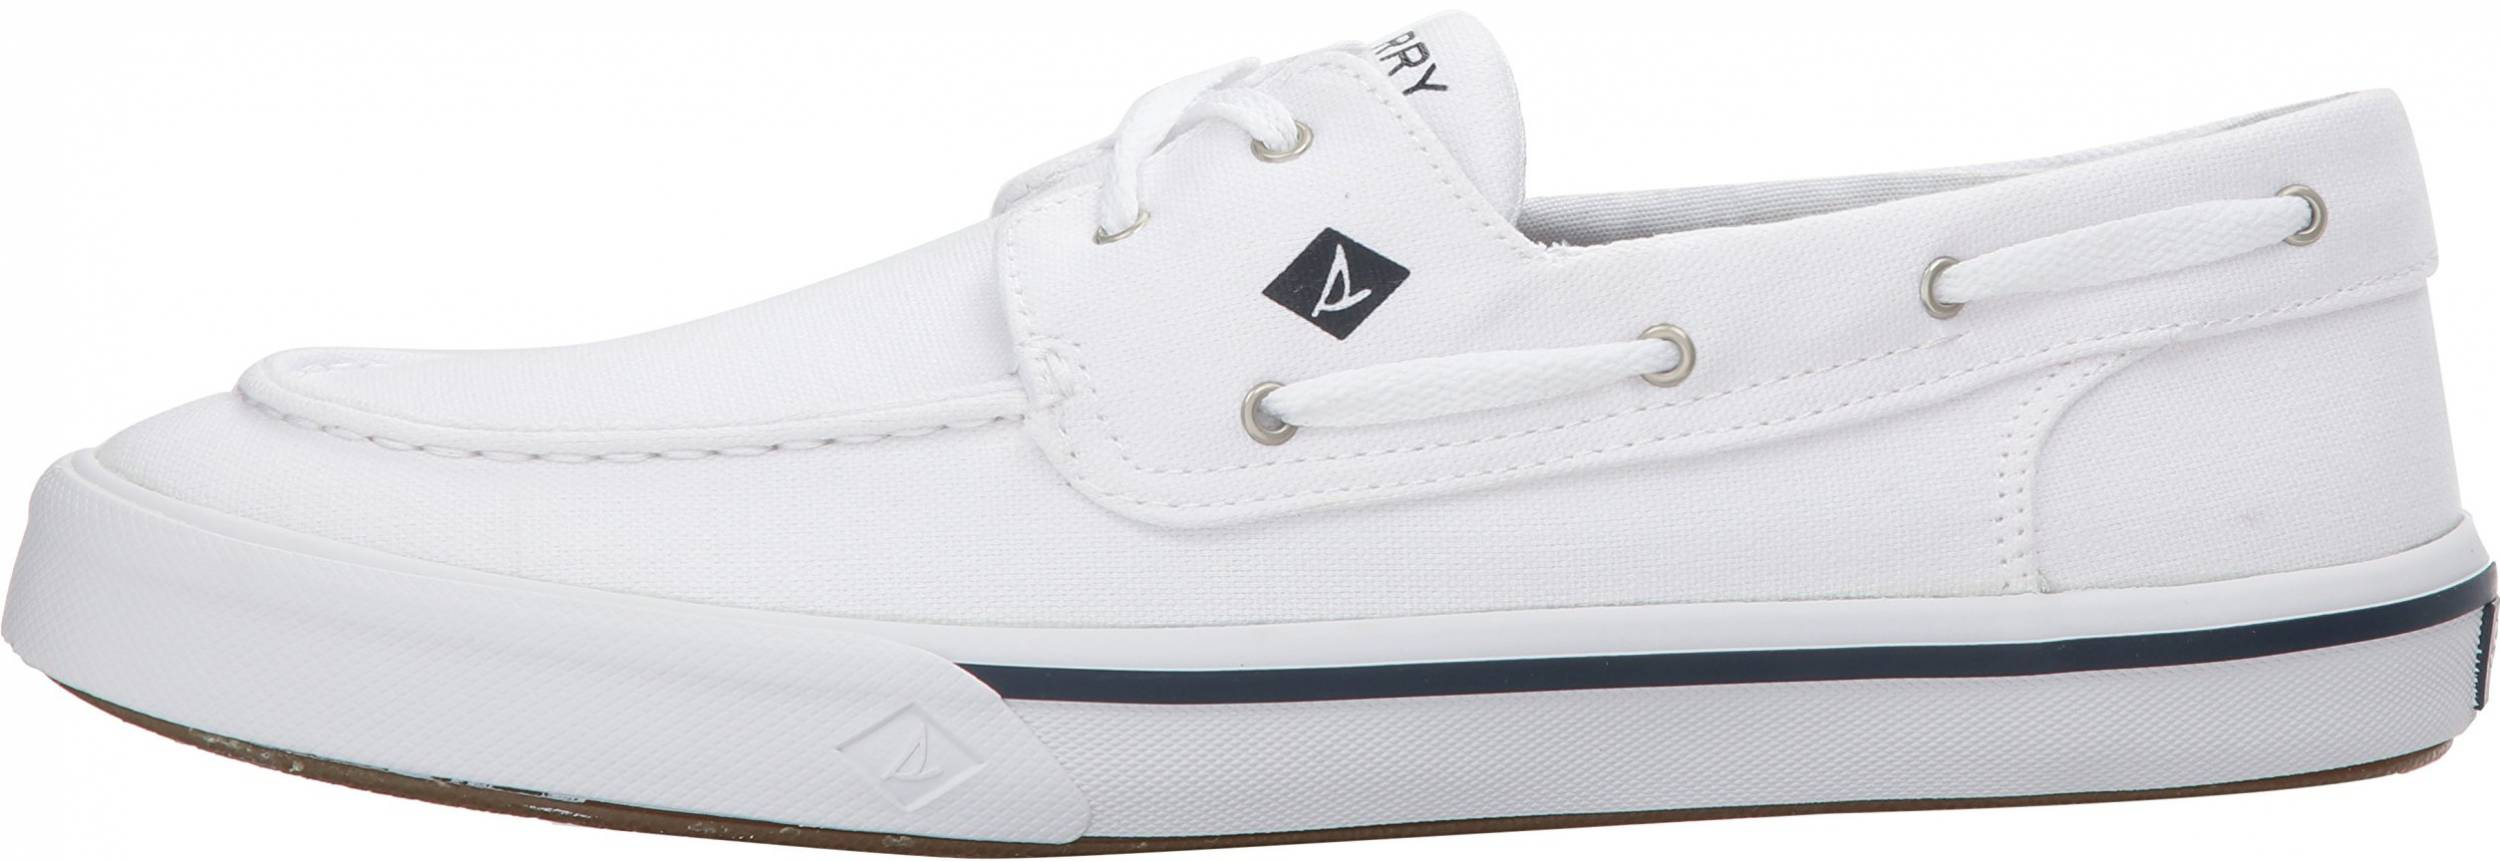 Save 53% on Sperry Sneakers (26 Models